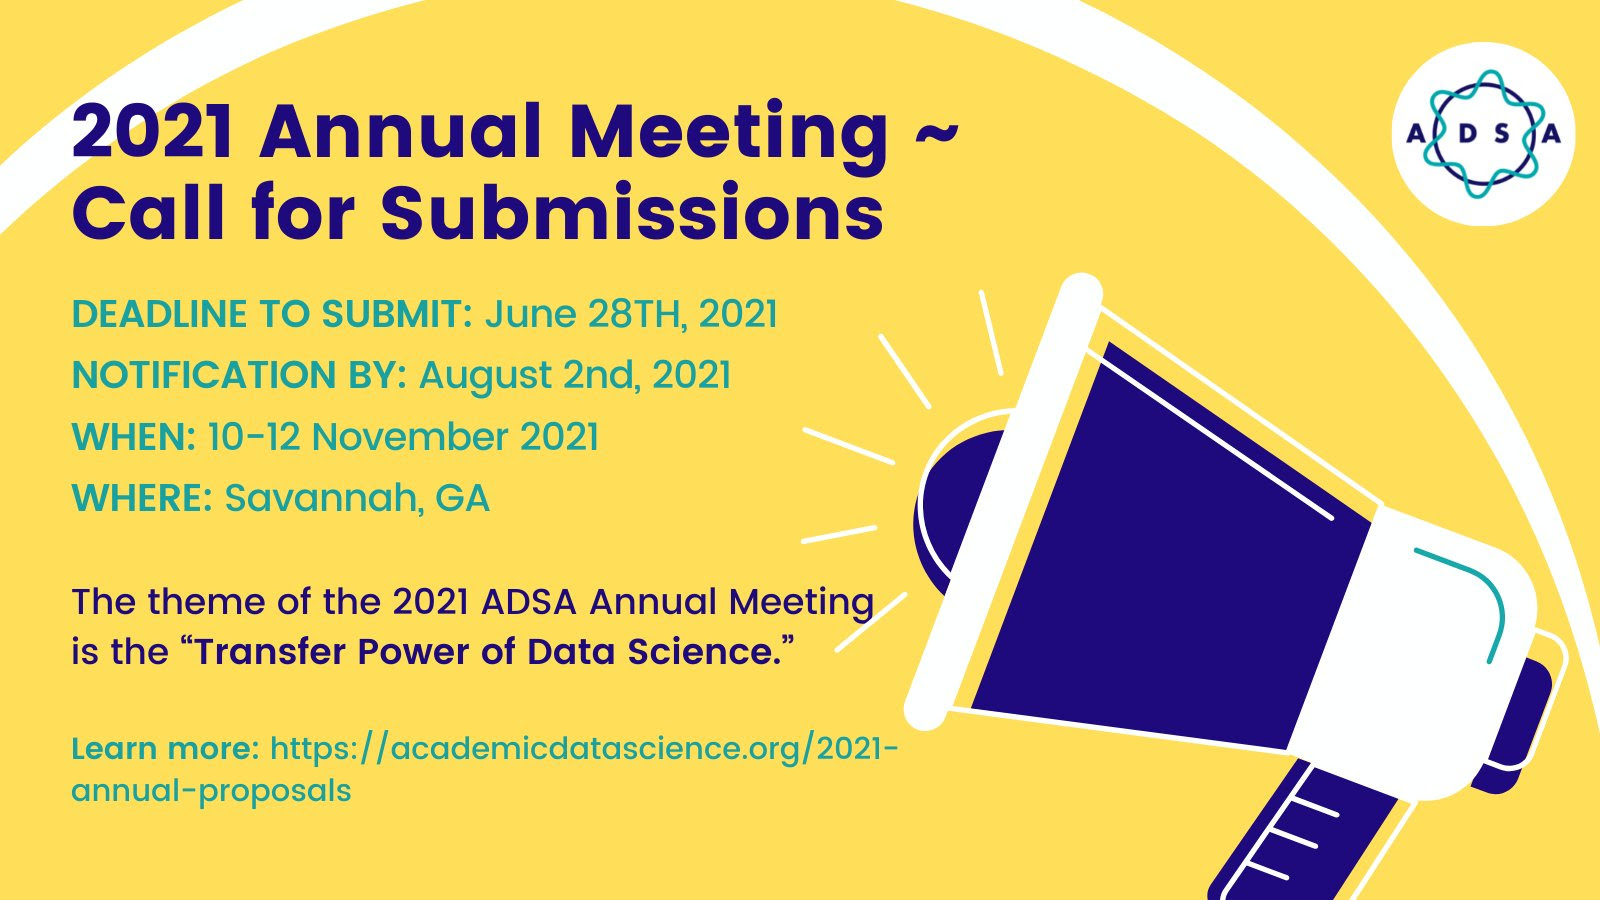 2021 ADSA Annual Meeting - Call for Submissions - Info Banner